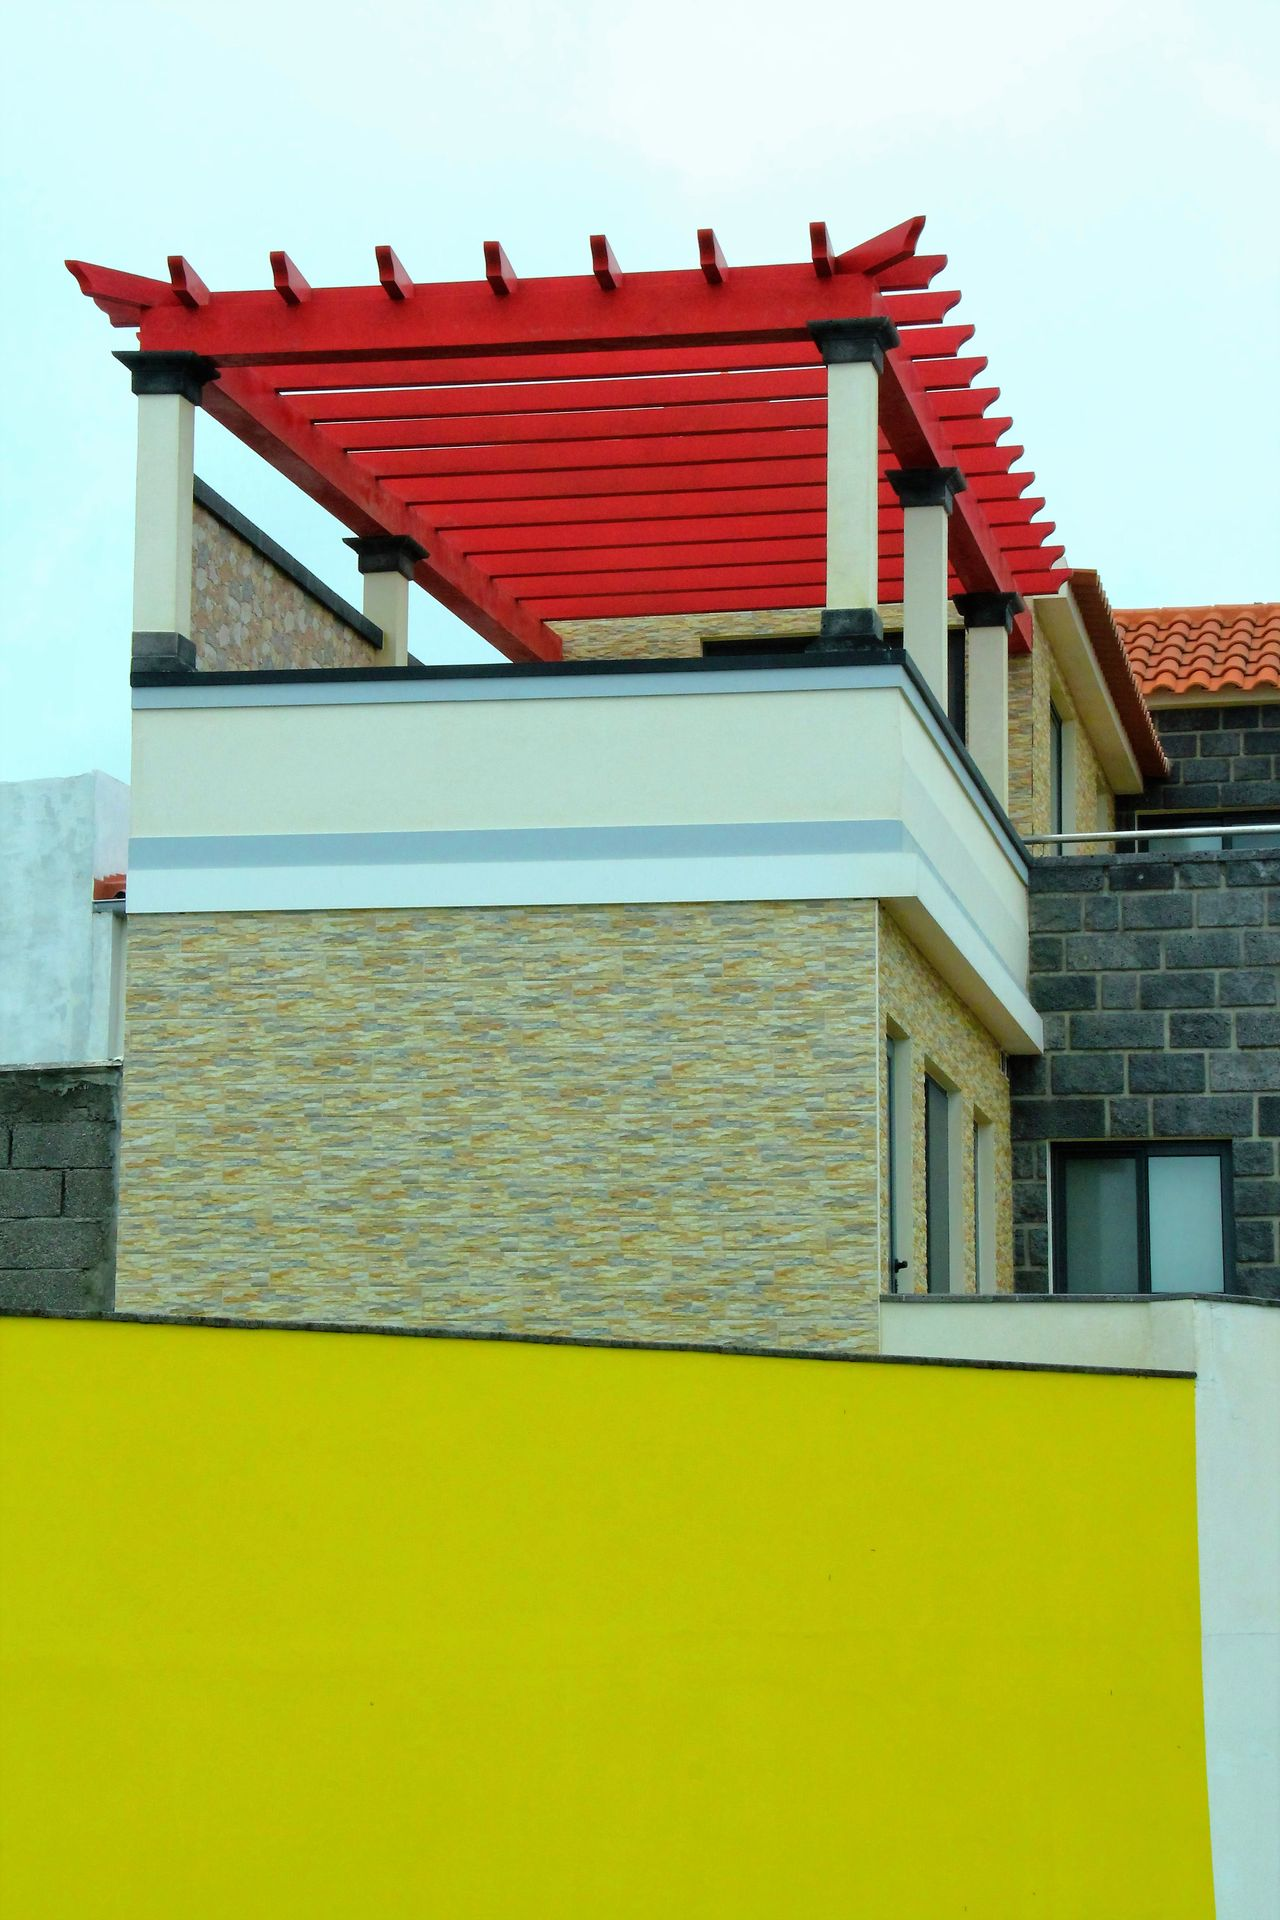 Architecture Building Exterior Built Structure Cloud - Sky Contrasts Day Exterior High Section In Front Of Modern Architecture Multi Colored No People Outside Pergola Red Restaurant Sky Vibrant Color Window Wooden Yellow TakeoverContrast